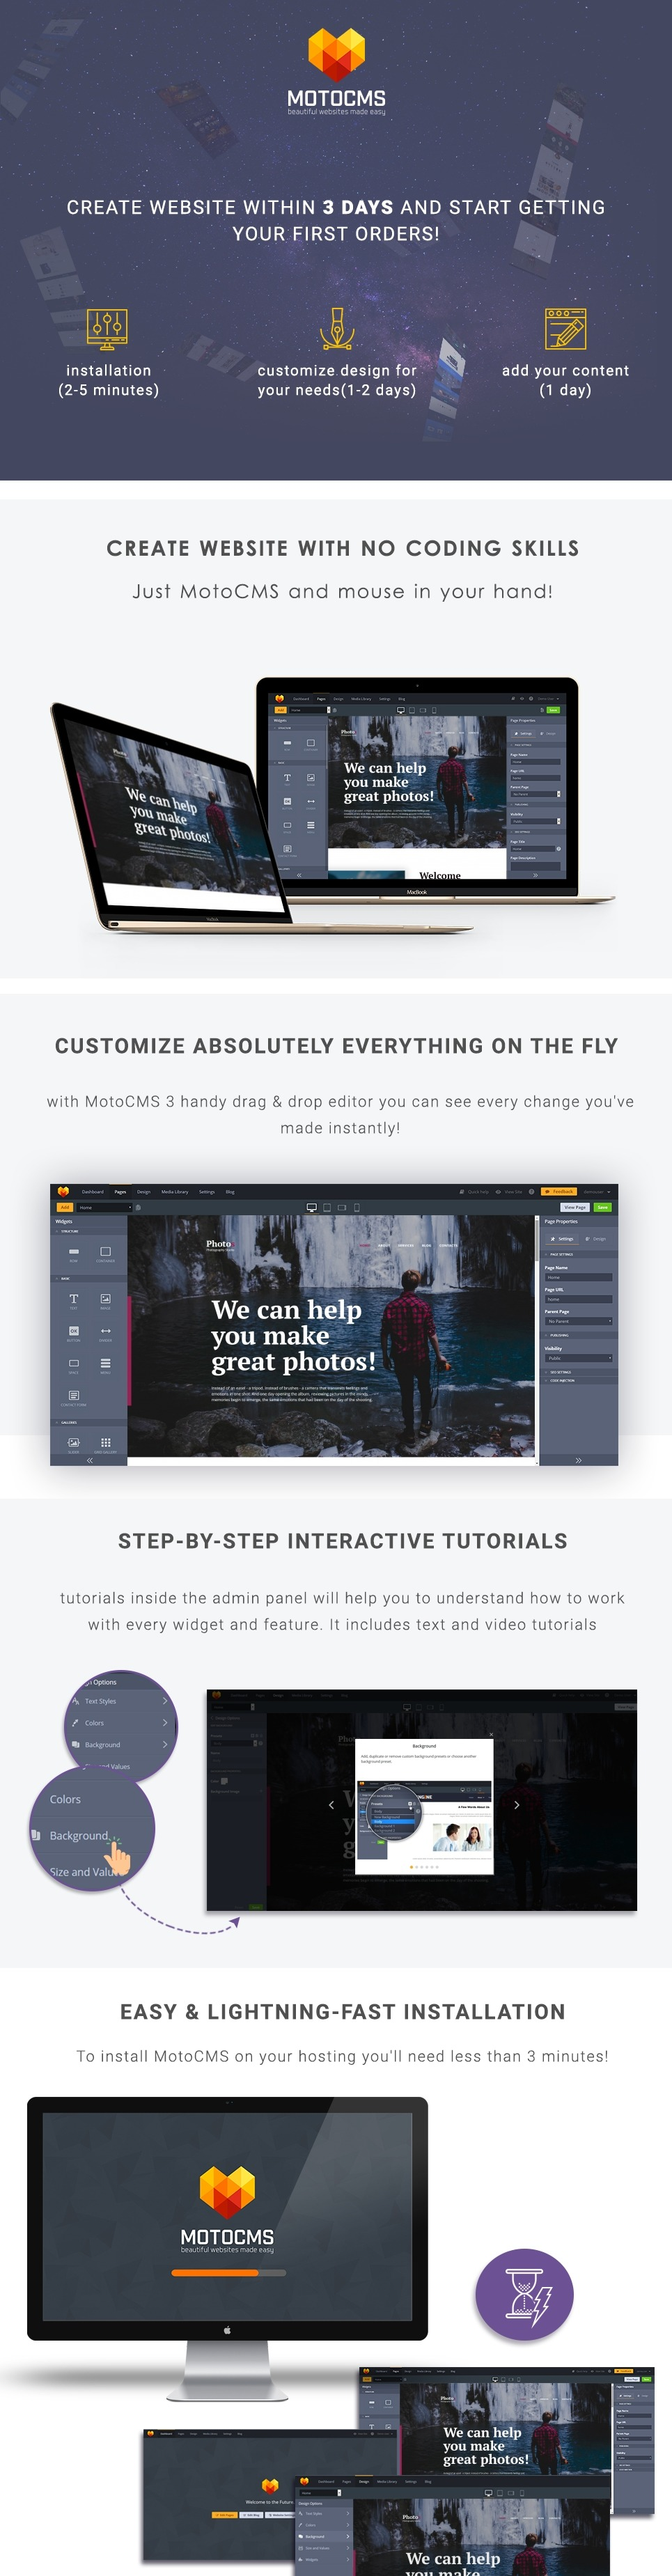 Photography Studio Website Template for Photographers - MotoCMS